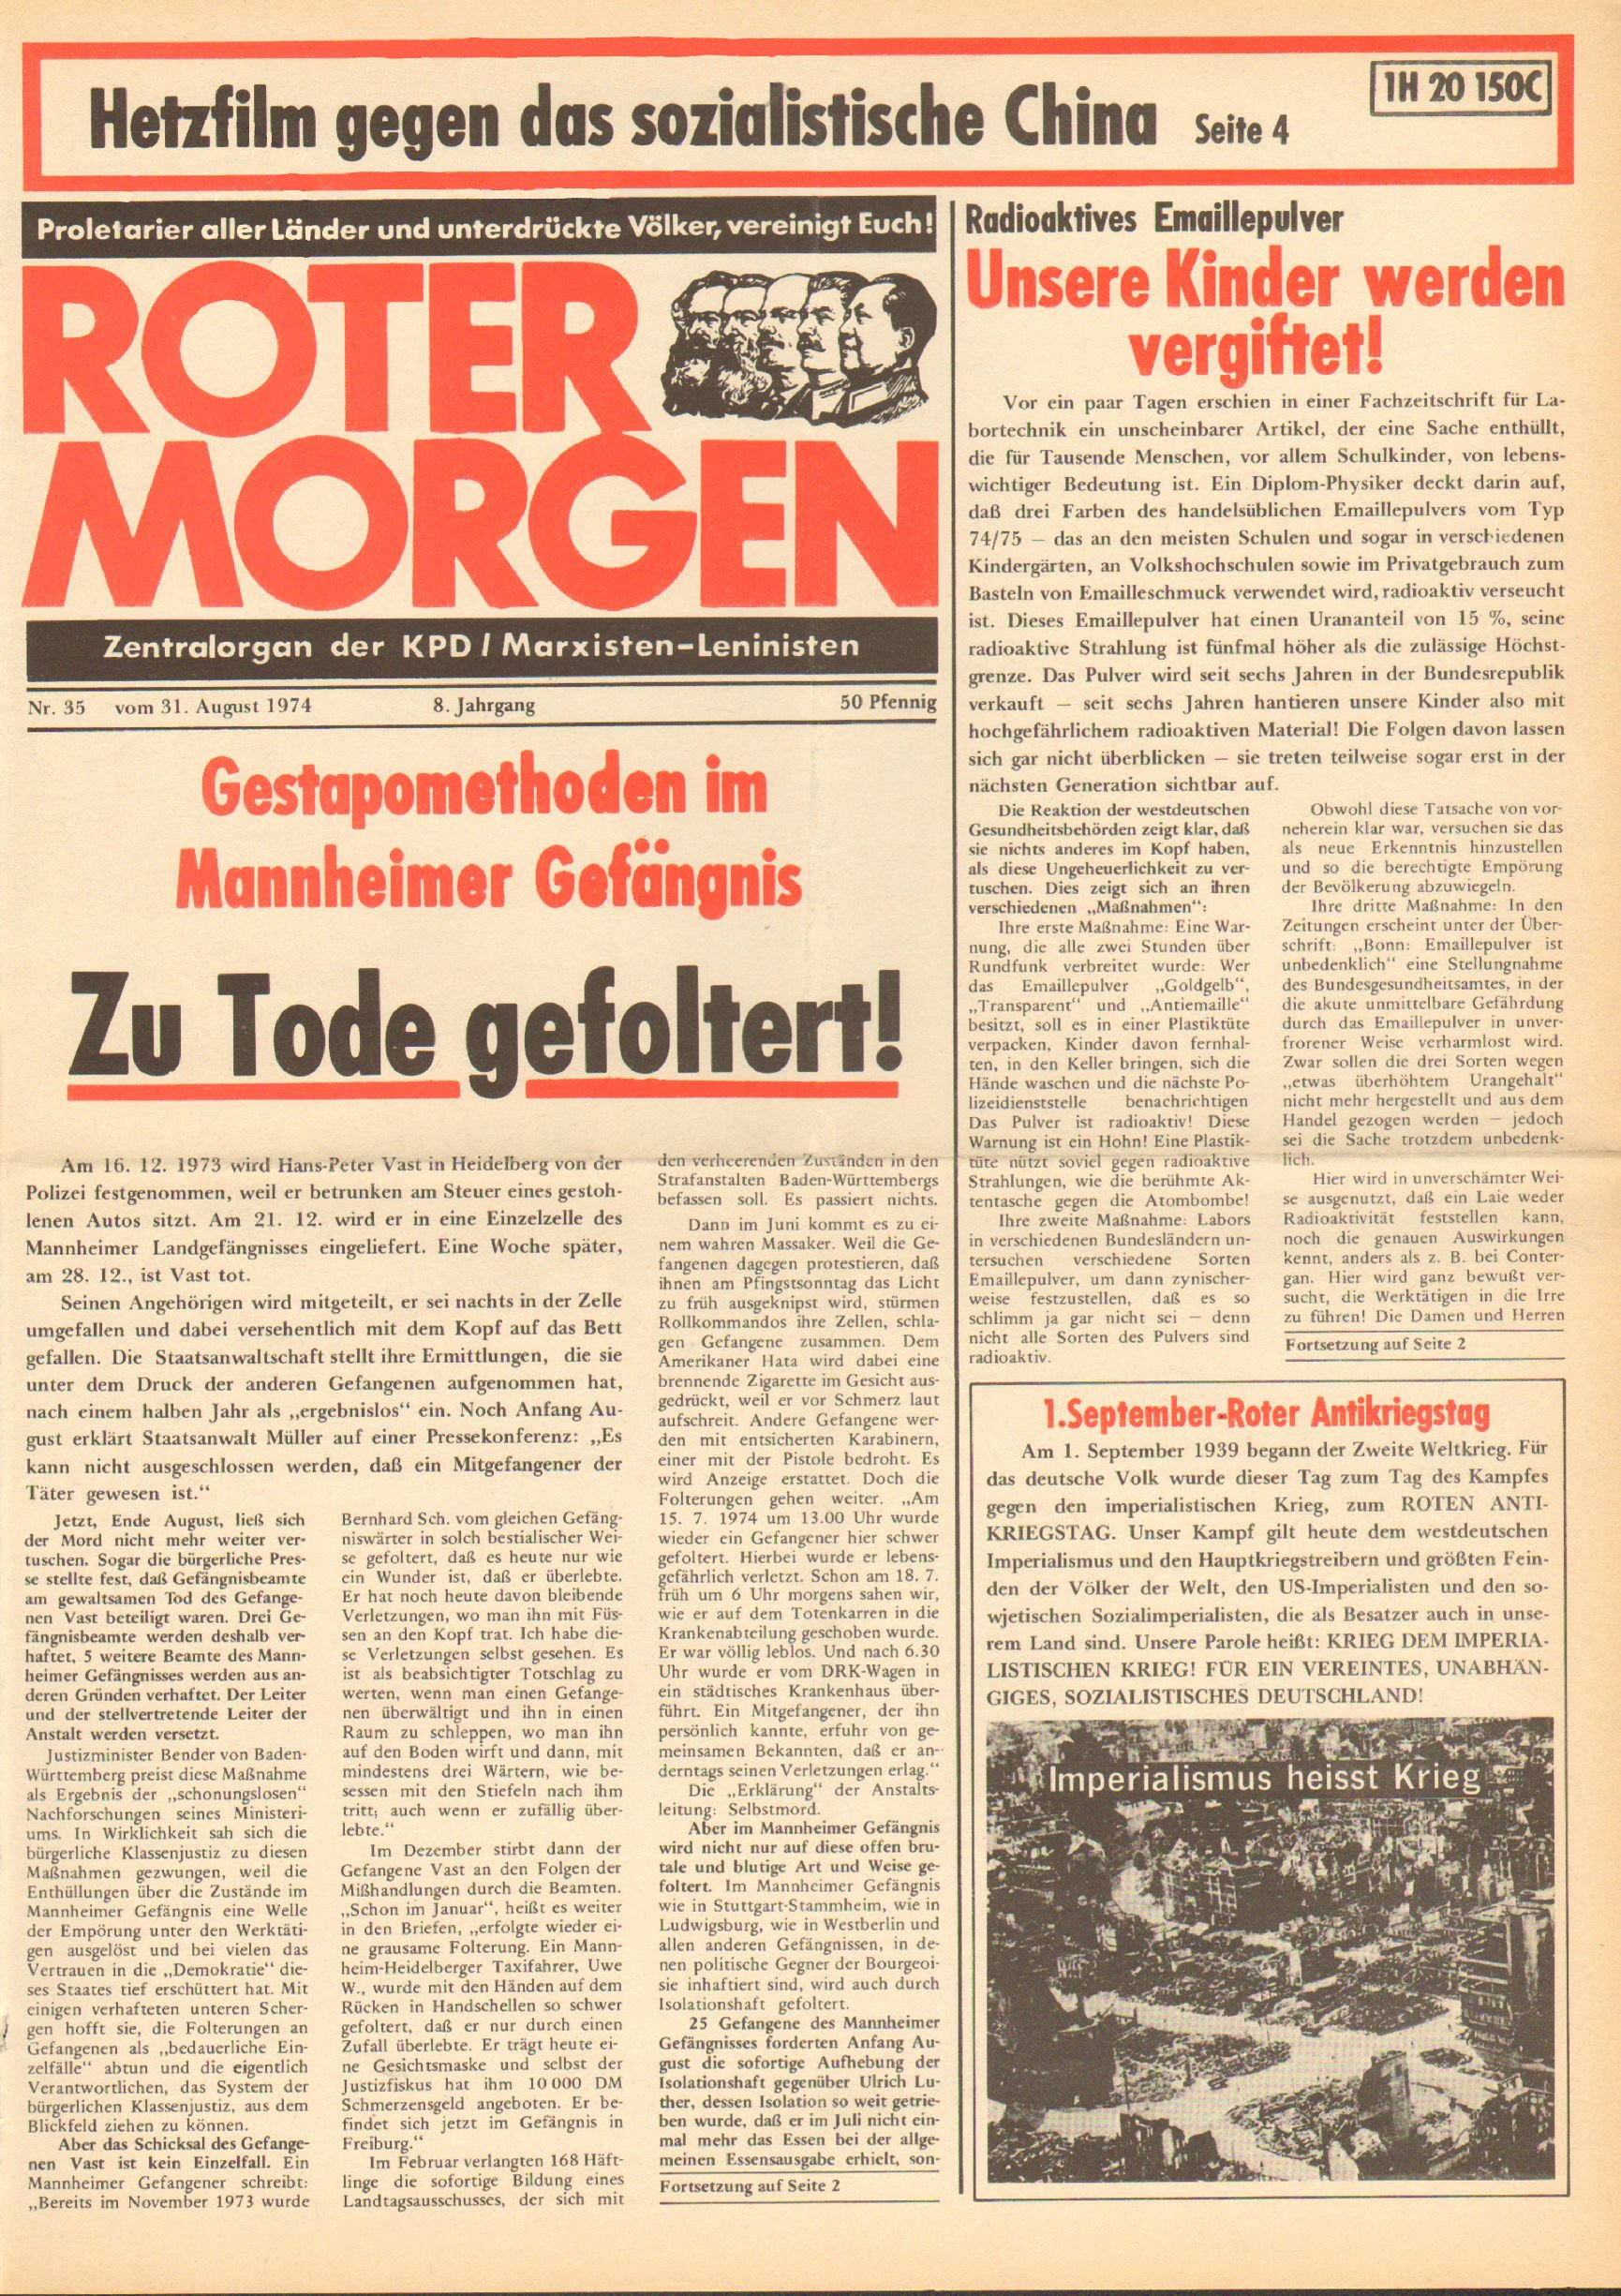 Roter Morgen, 8. Jg., 31. August 1974, Nr. 35, Seite 1